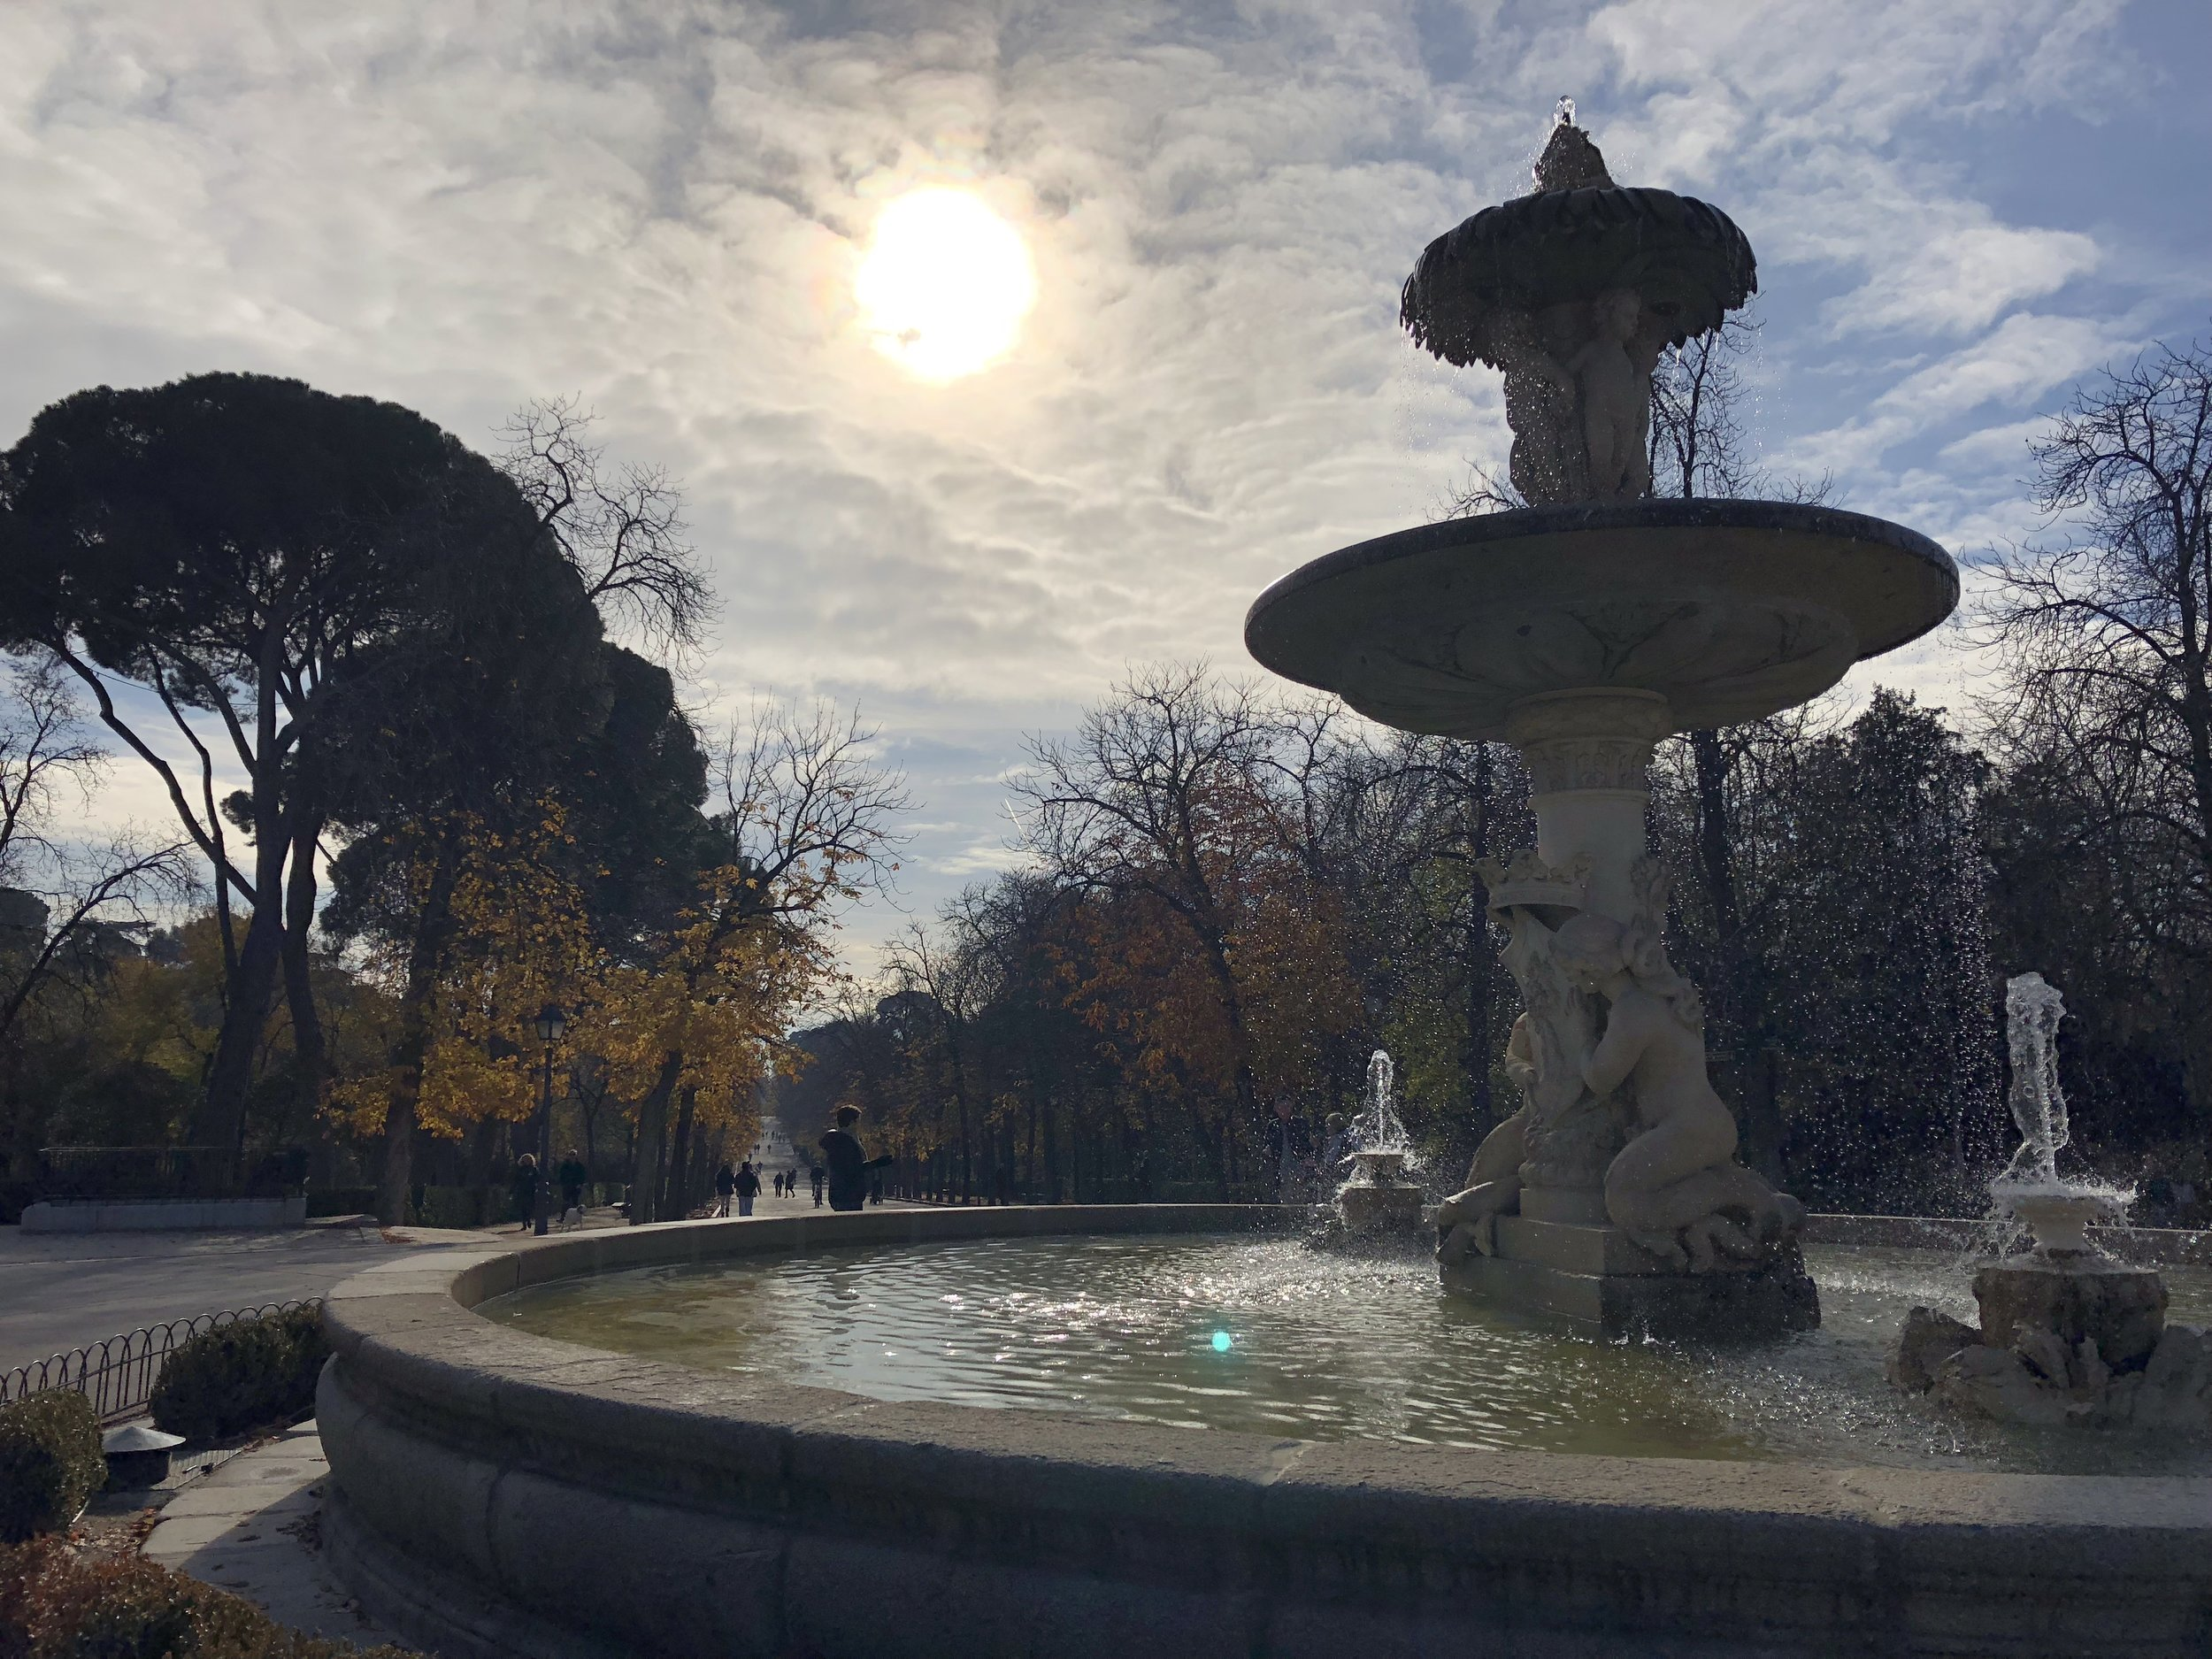 Central fountain at Retiro Park.